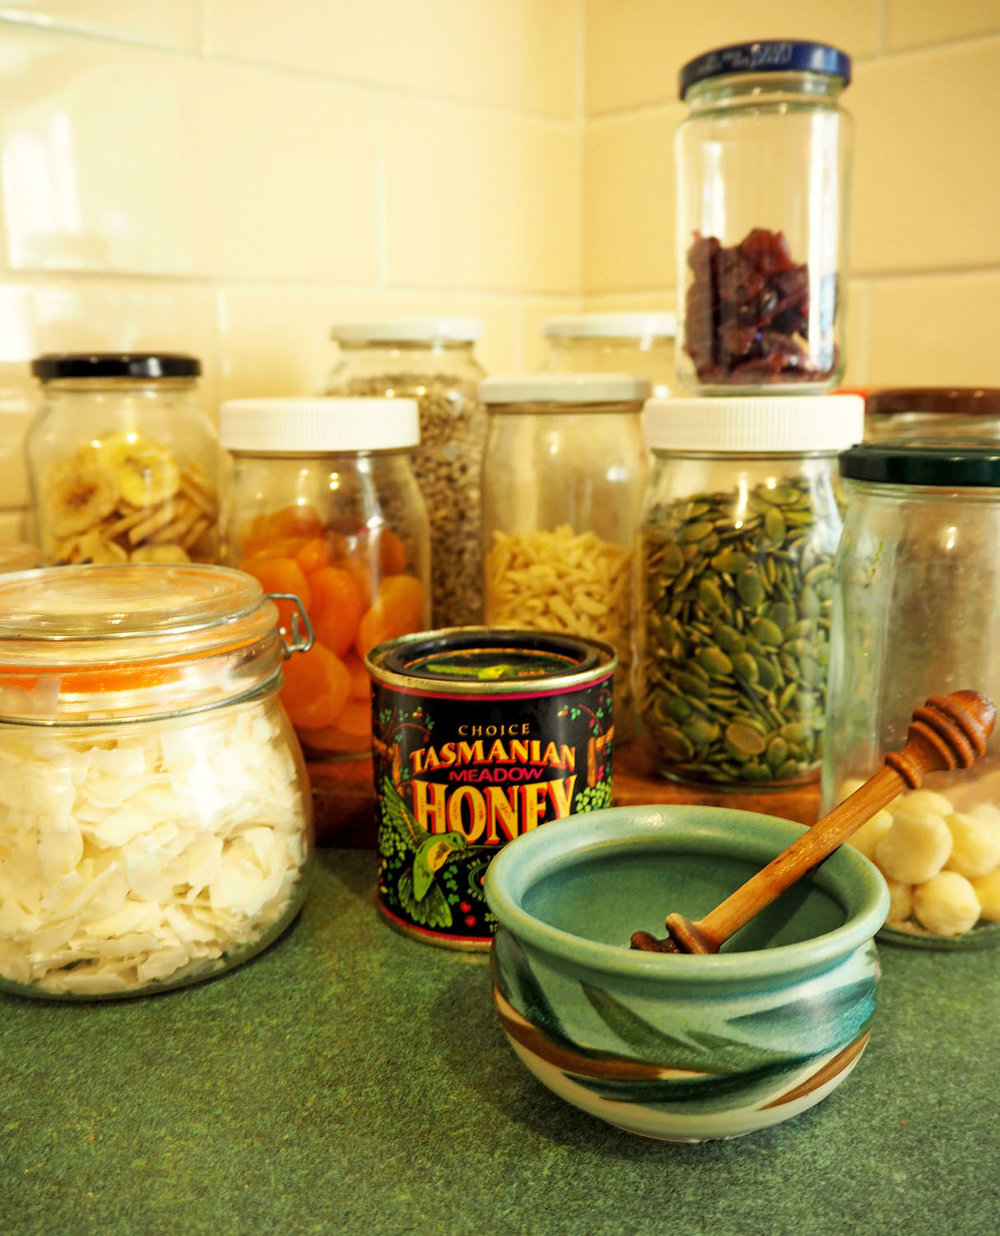 Gluten-free granola ingredients in jars